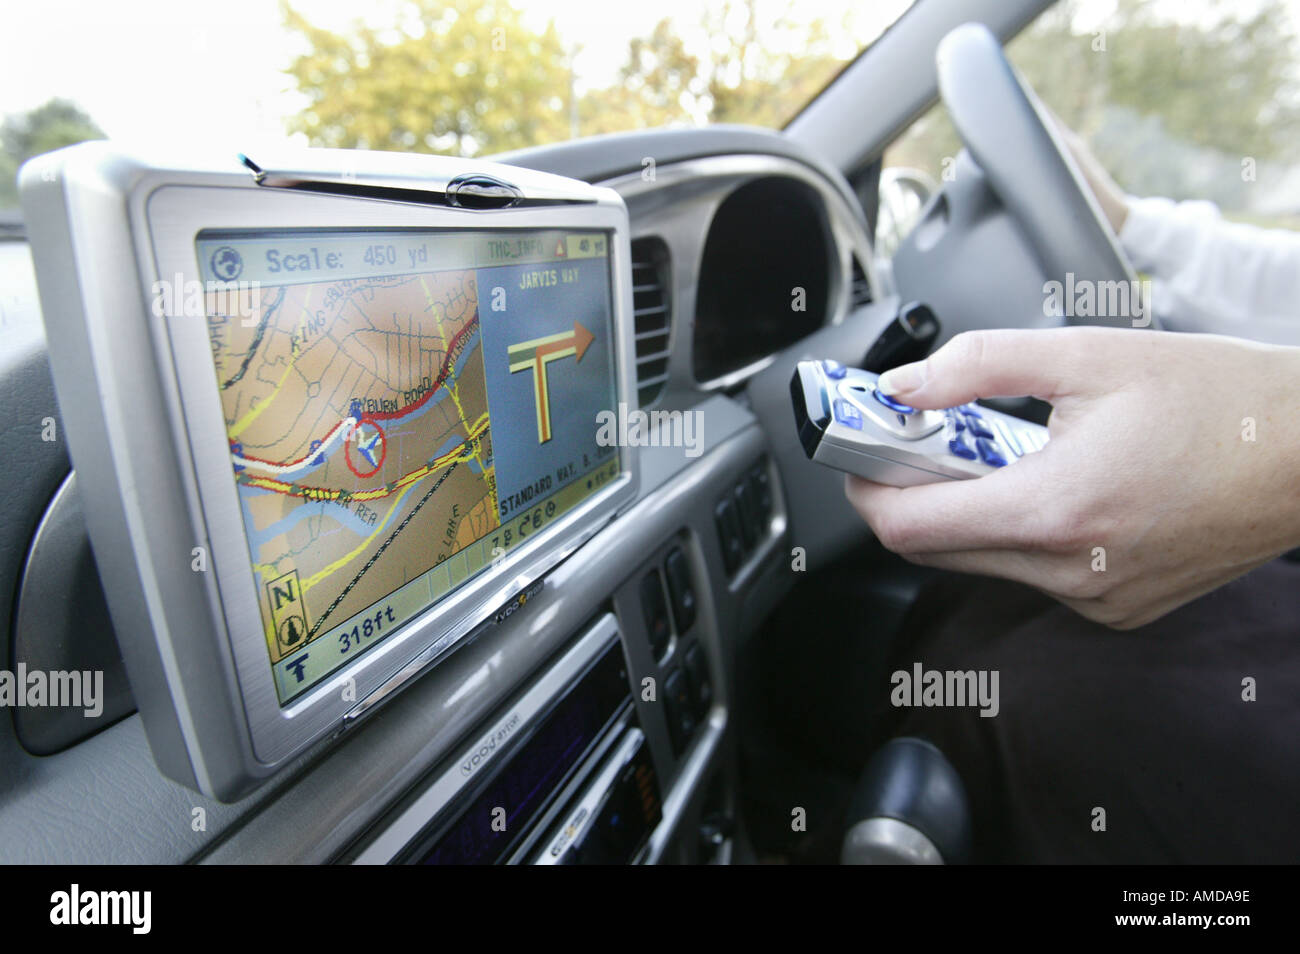 An in car satellite navigation system in the UK. - Stock Image